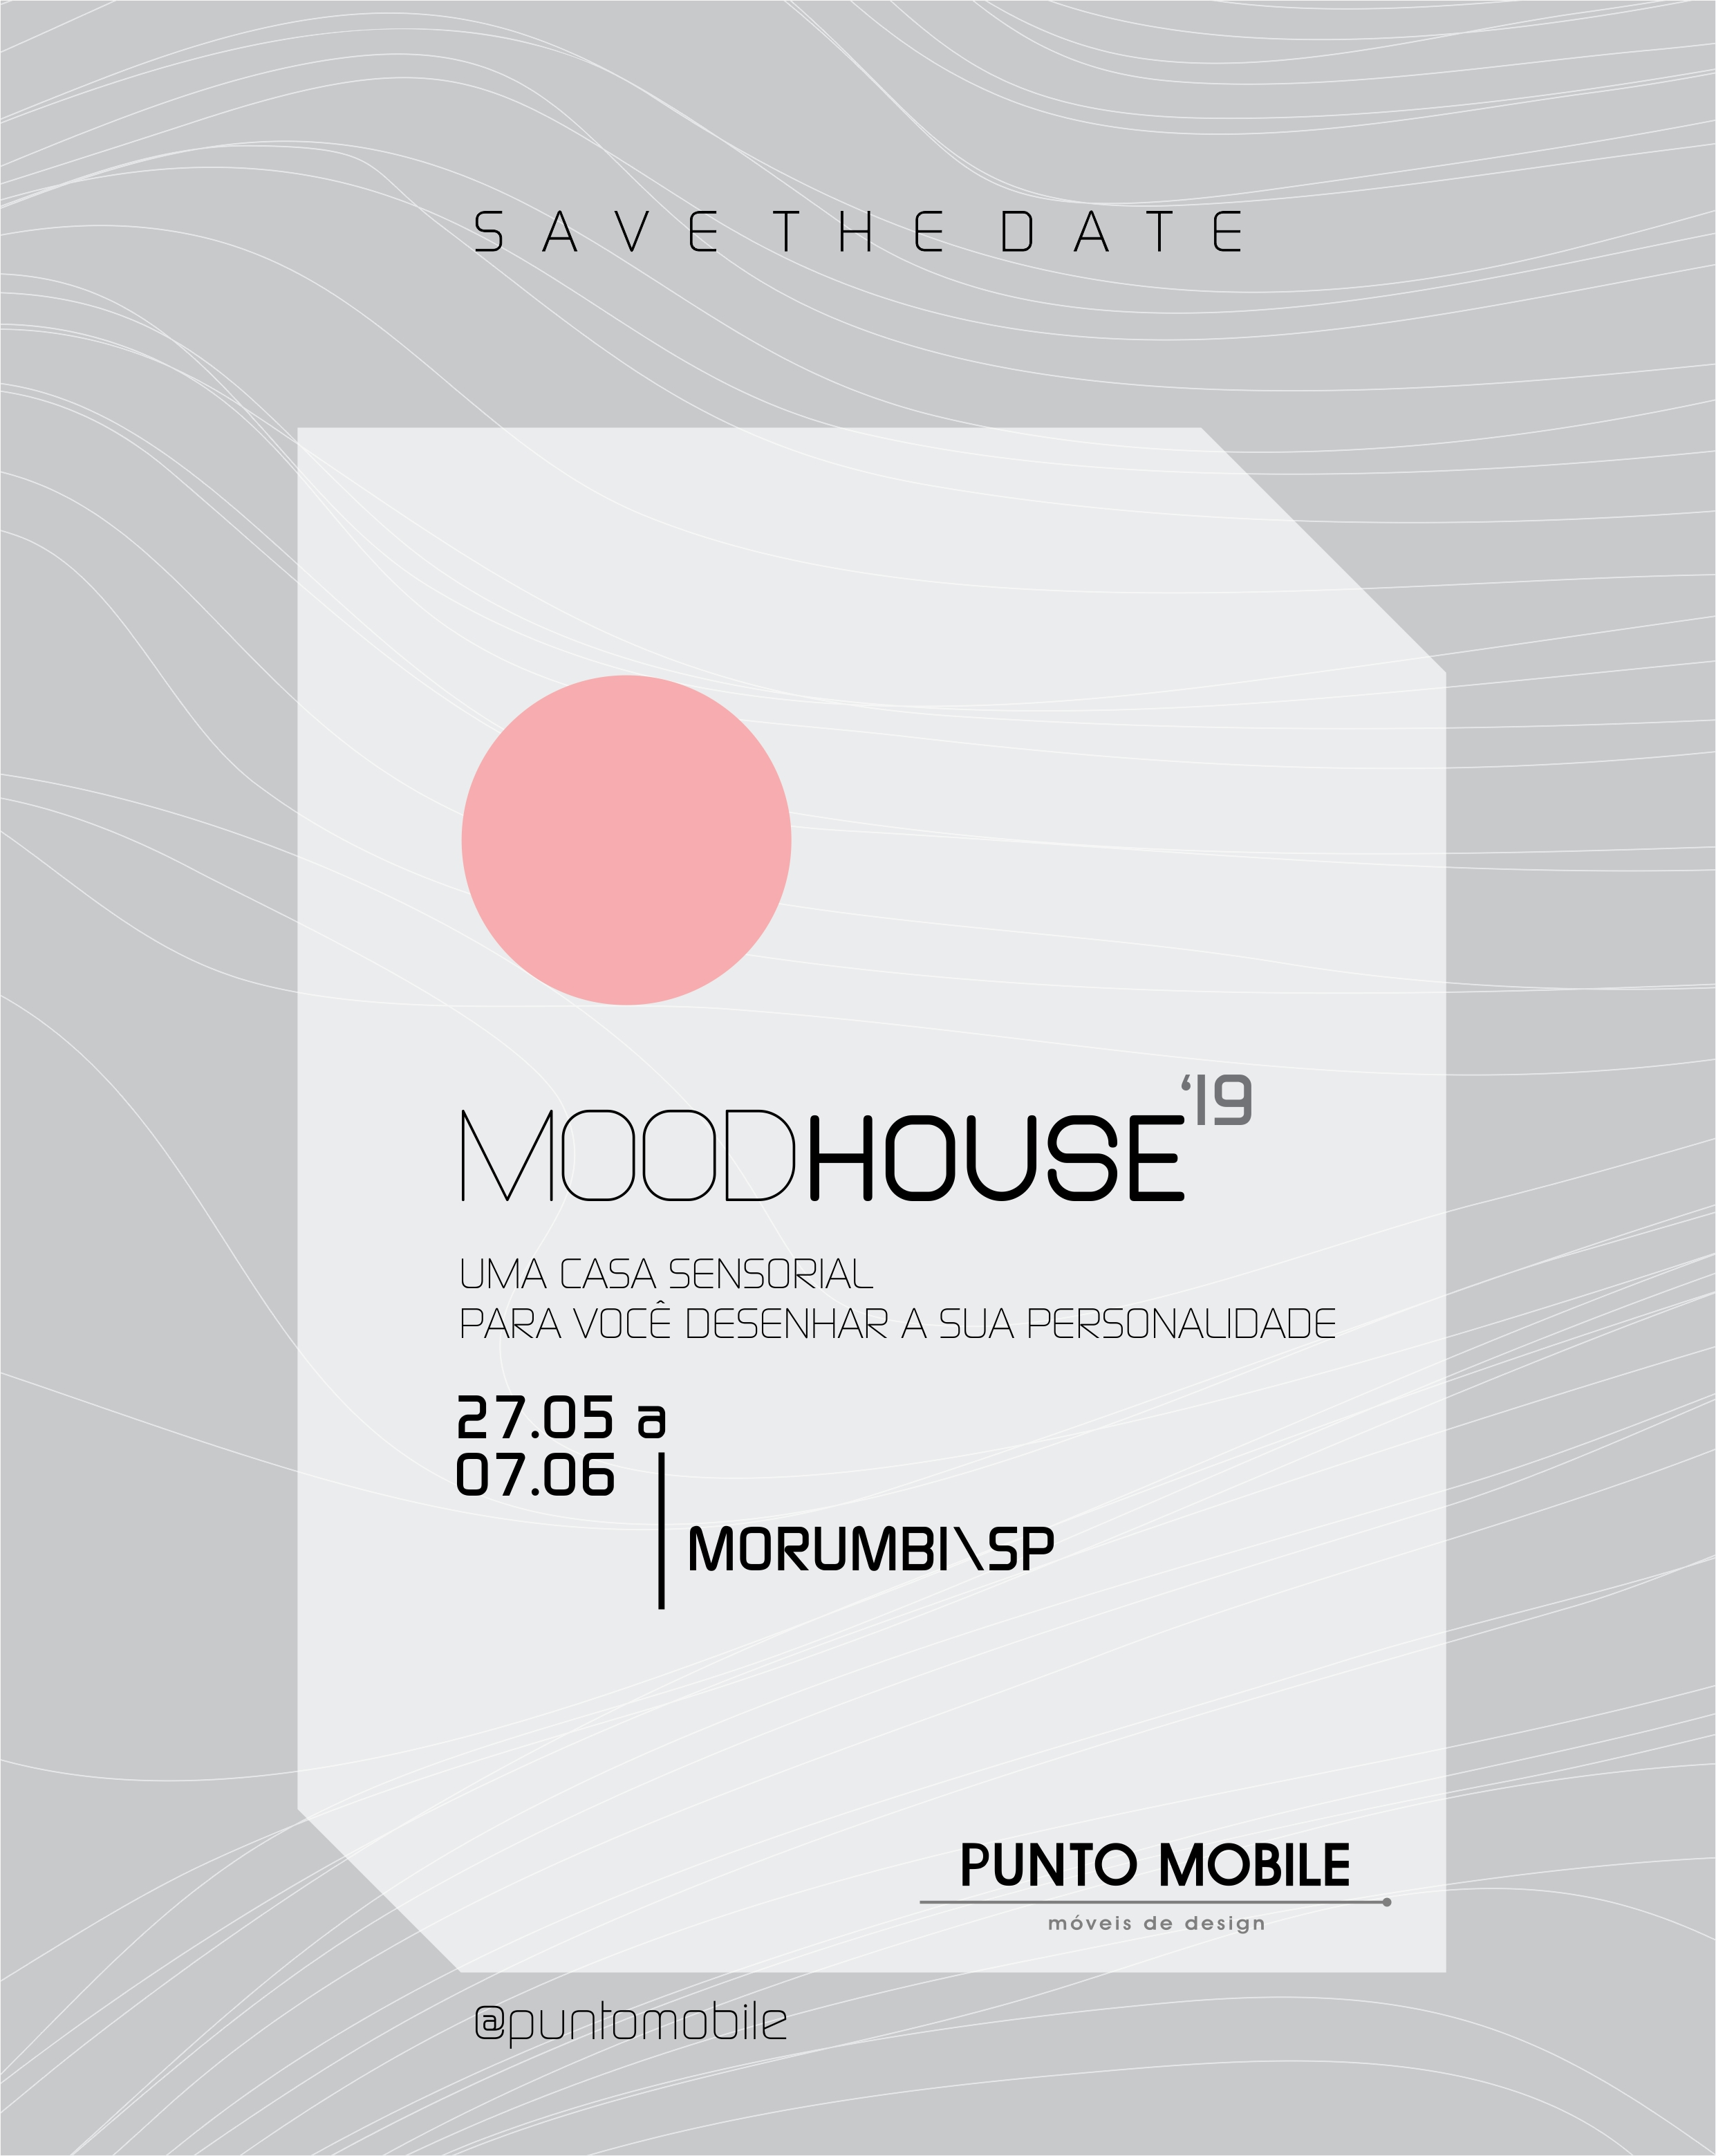 MOODHOUSE